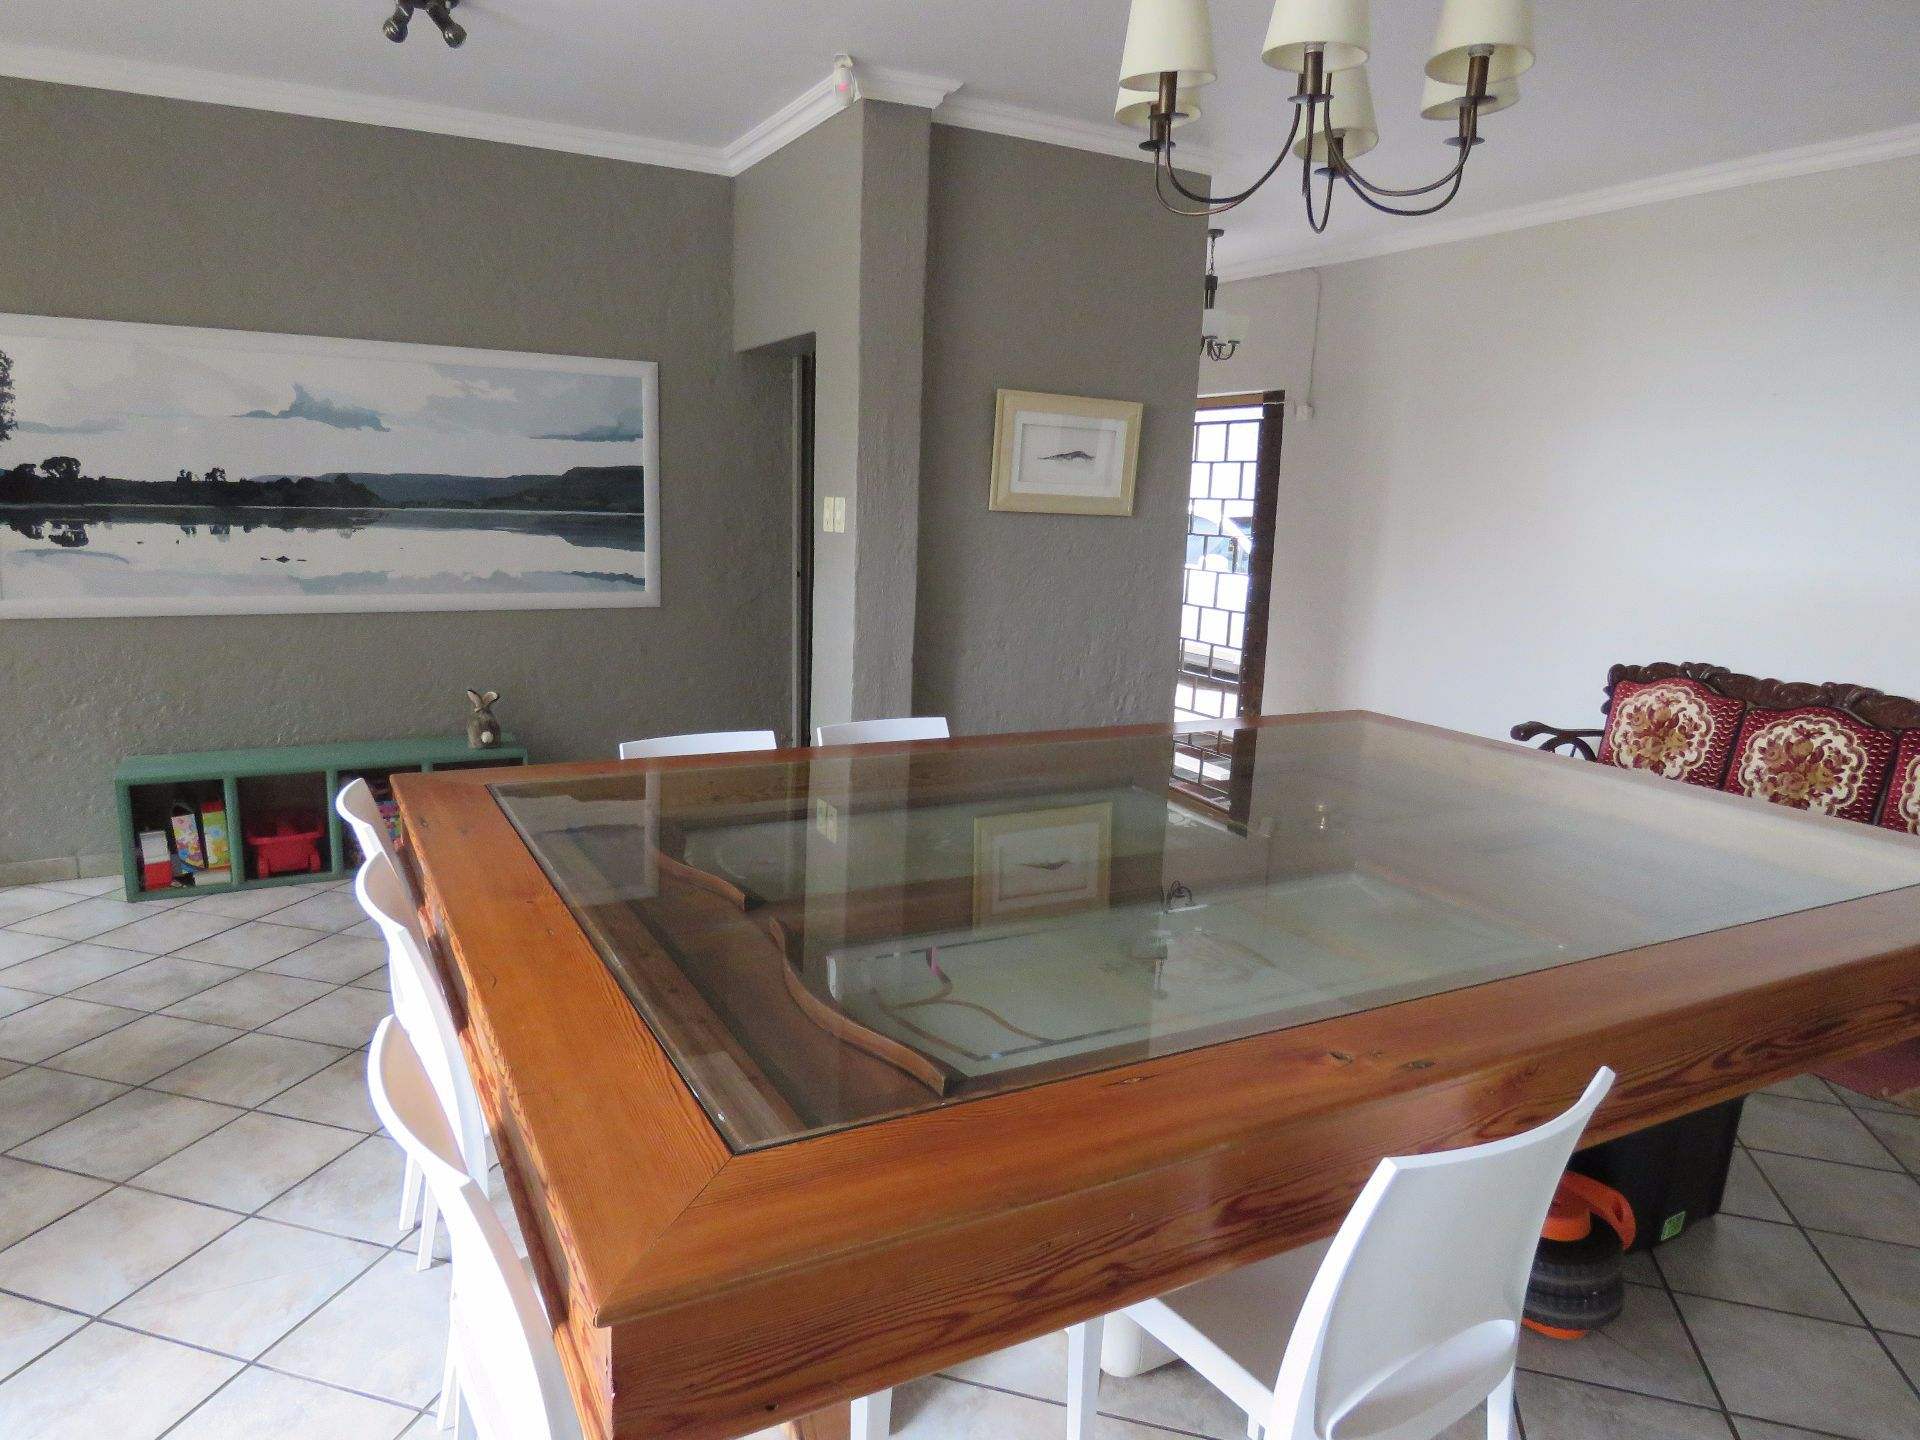 Potchefstroom Central property for sale. Ref No: 13543908. Picture no 7